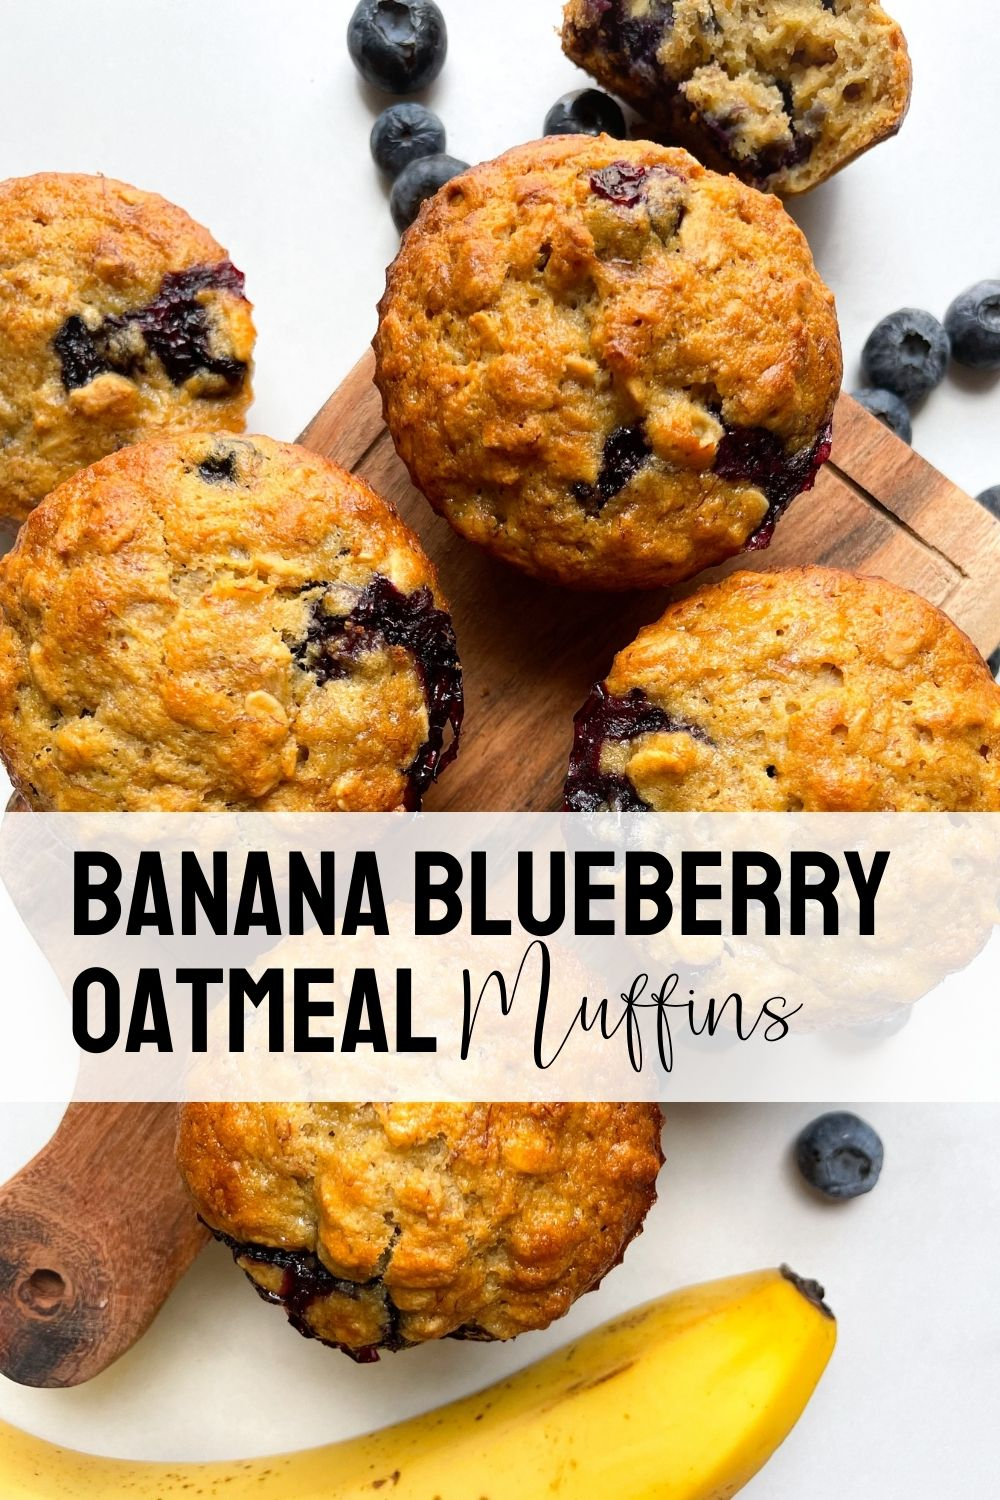 muffins on wooden board with blueberries and banana with text overlay